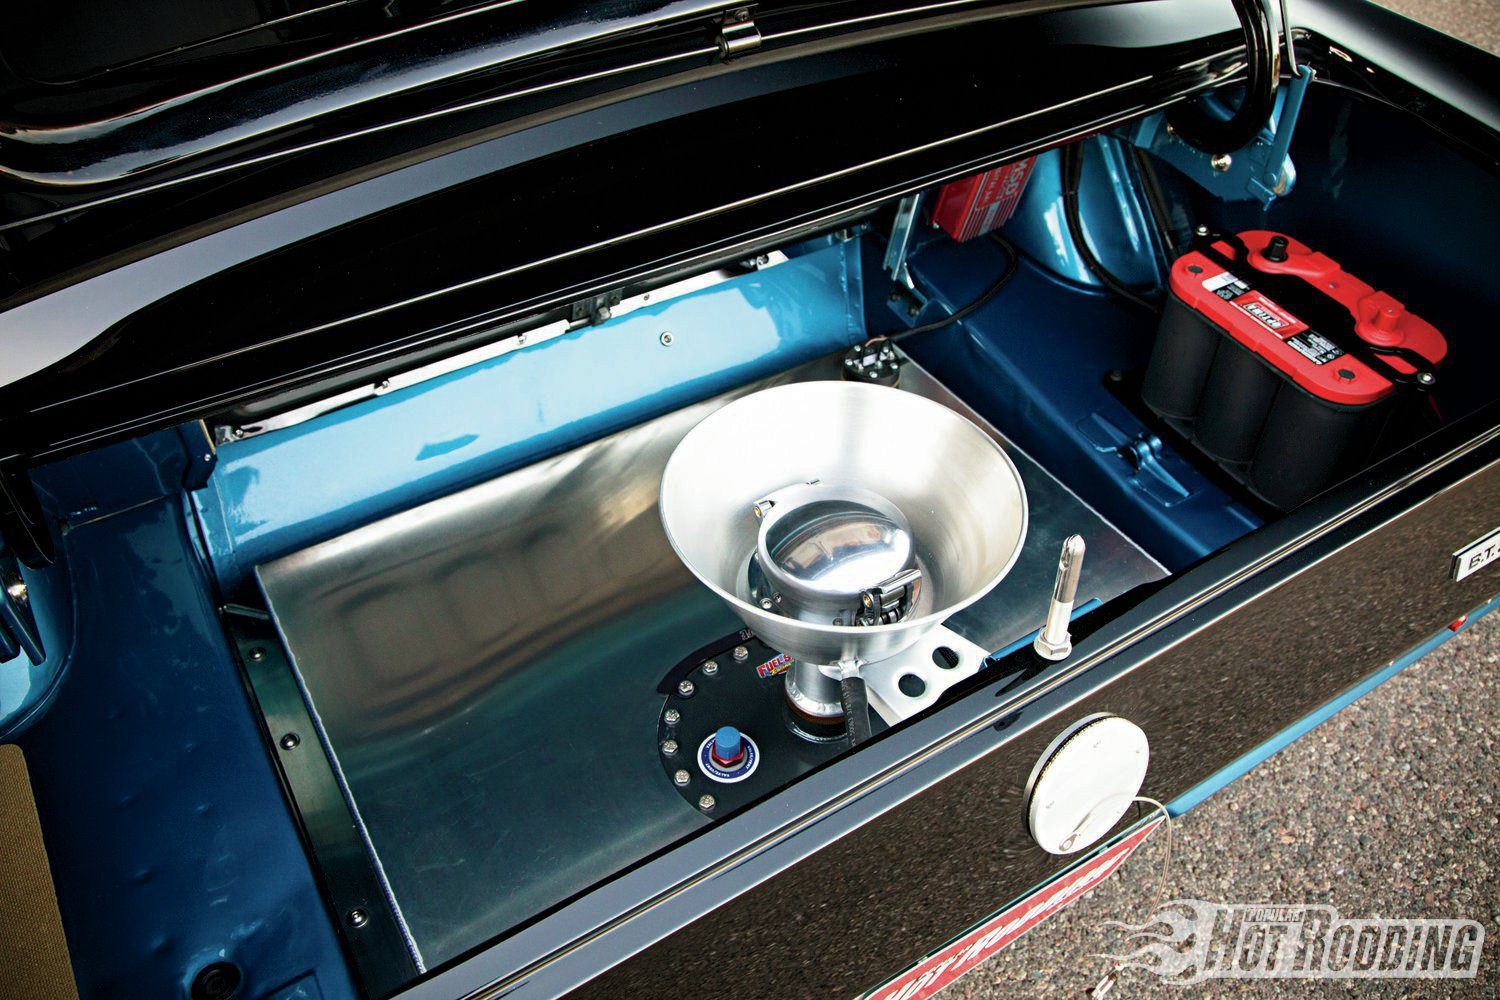 Road racers have big fuel cells, and the Mustang's 22-gallon Fuel Safe unit is no exception. It's been fashioned with a Shelby R-style splash bucket.